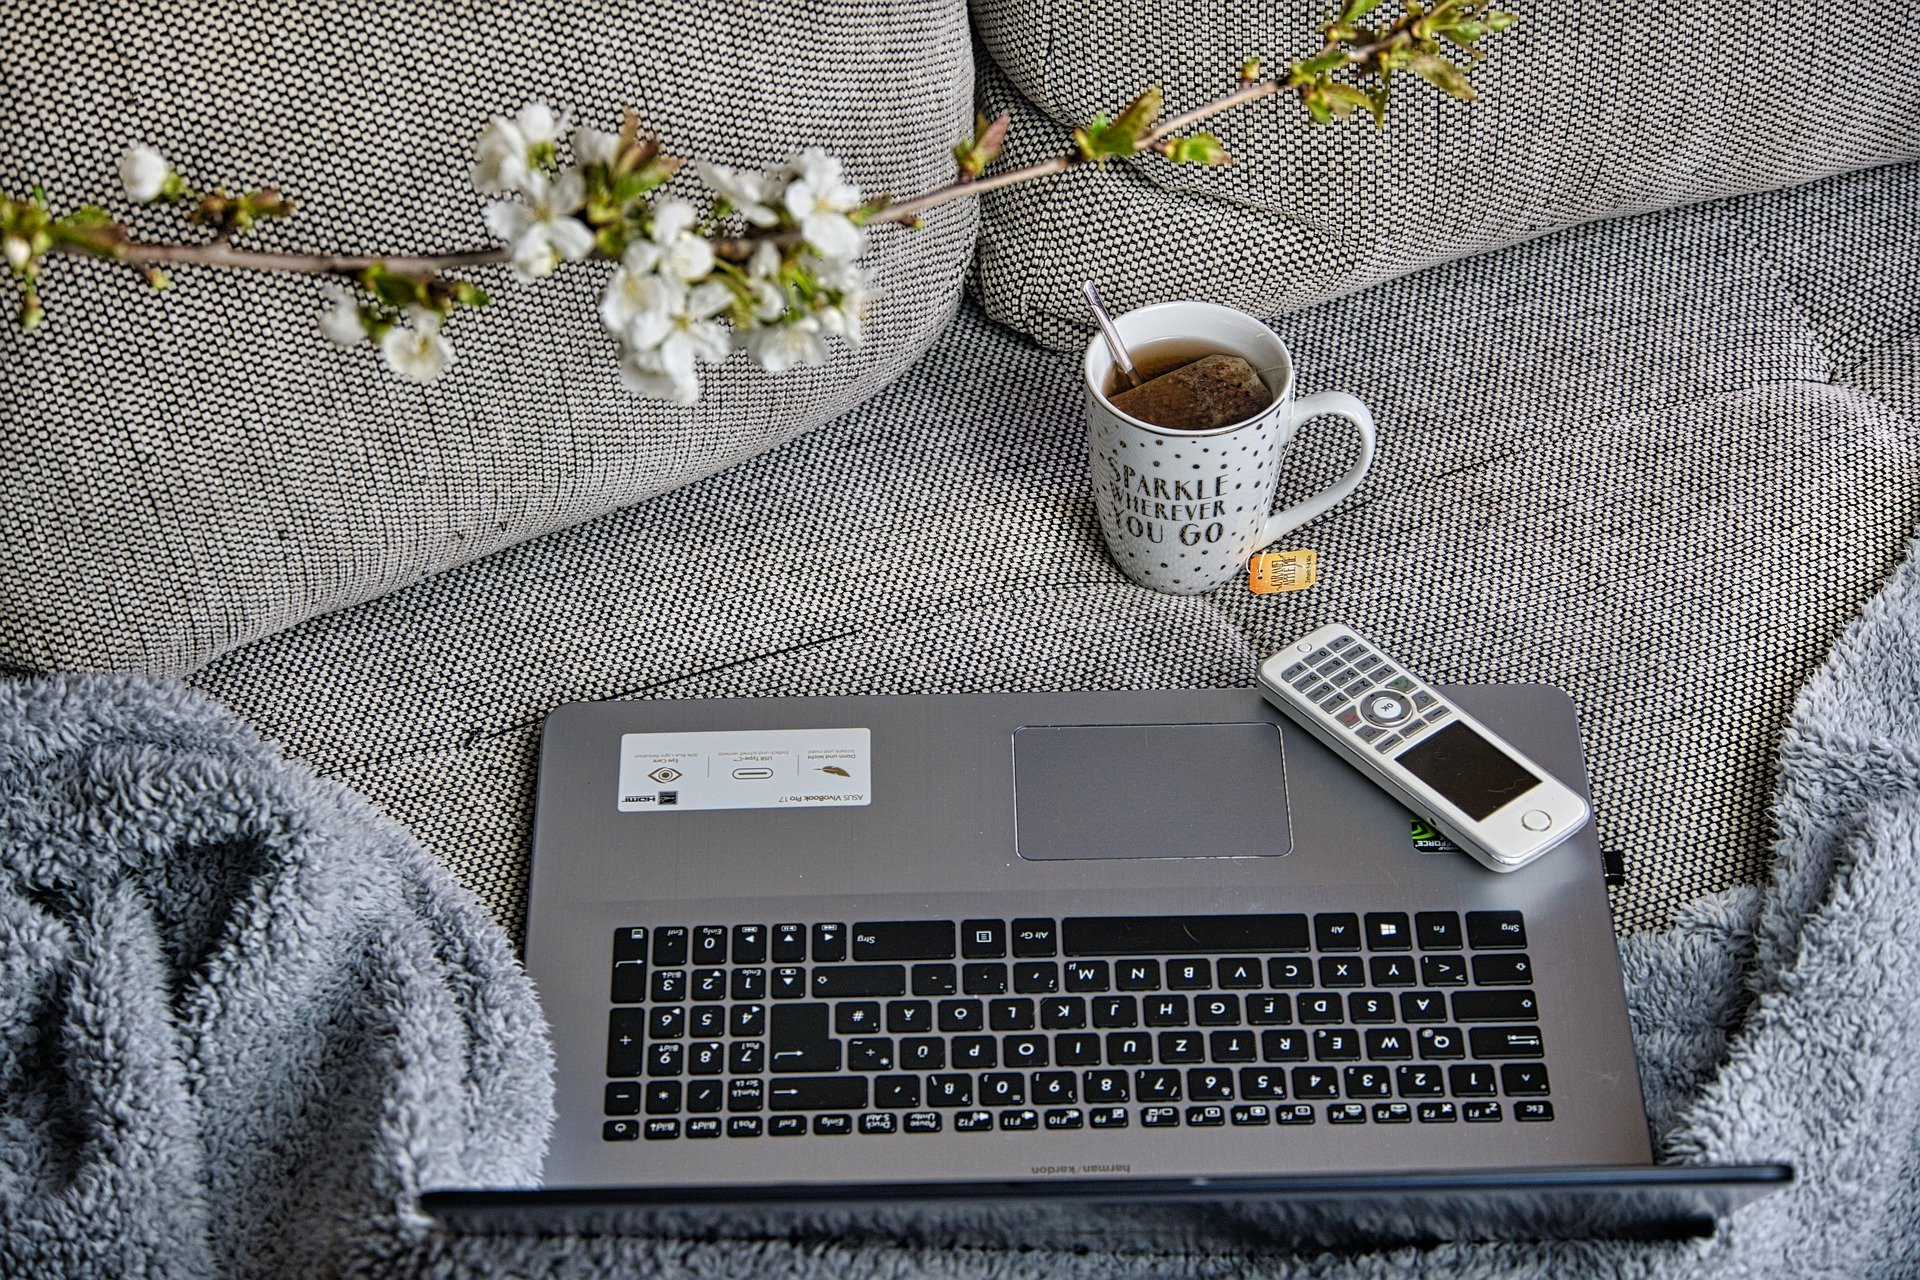 a laptop and phone and mug on a couch